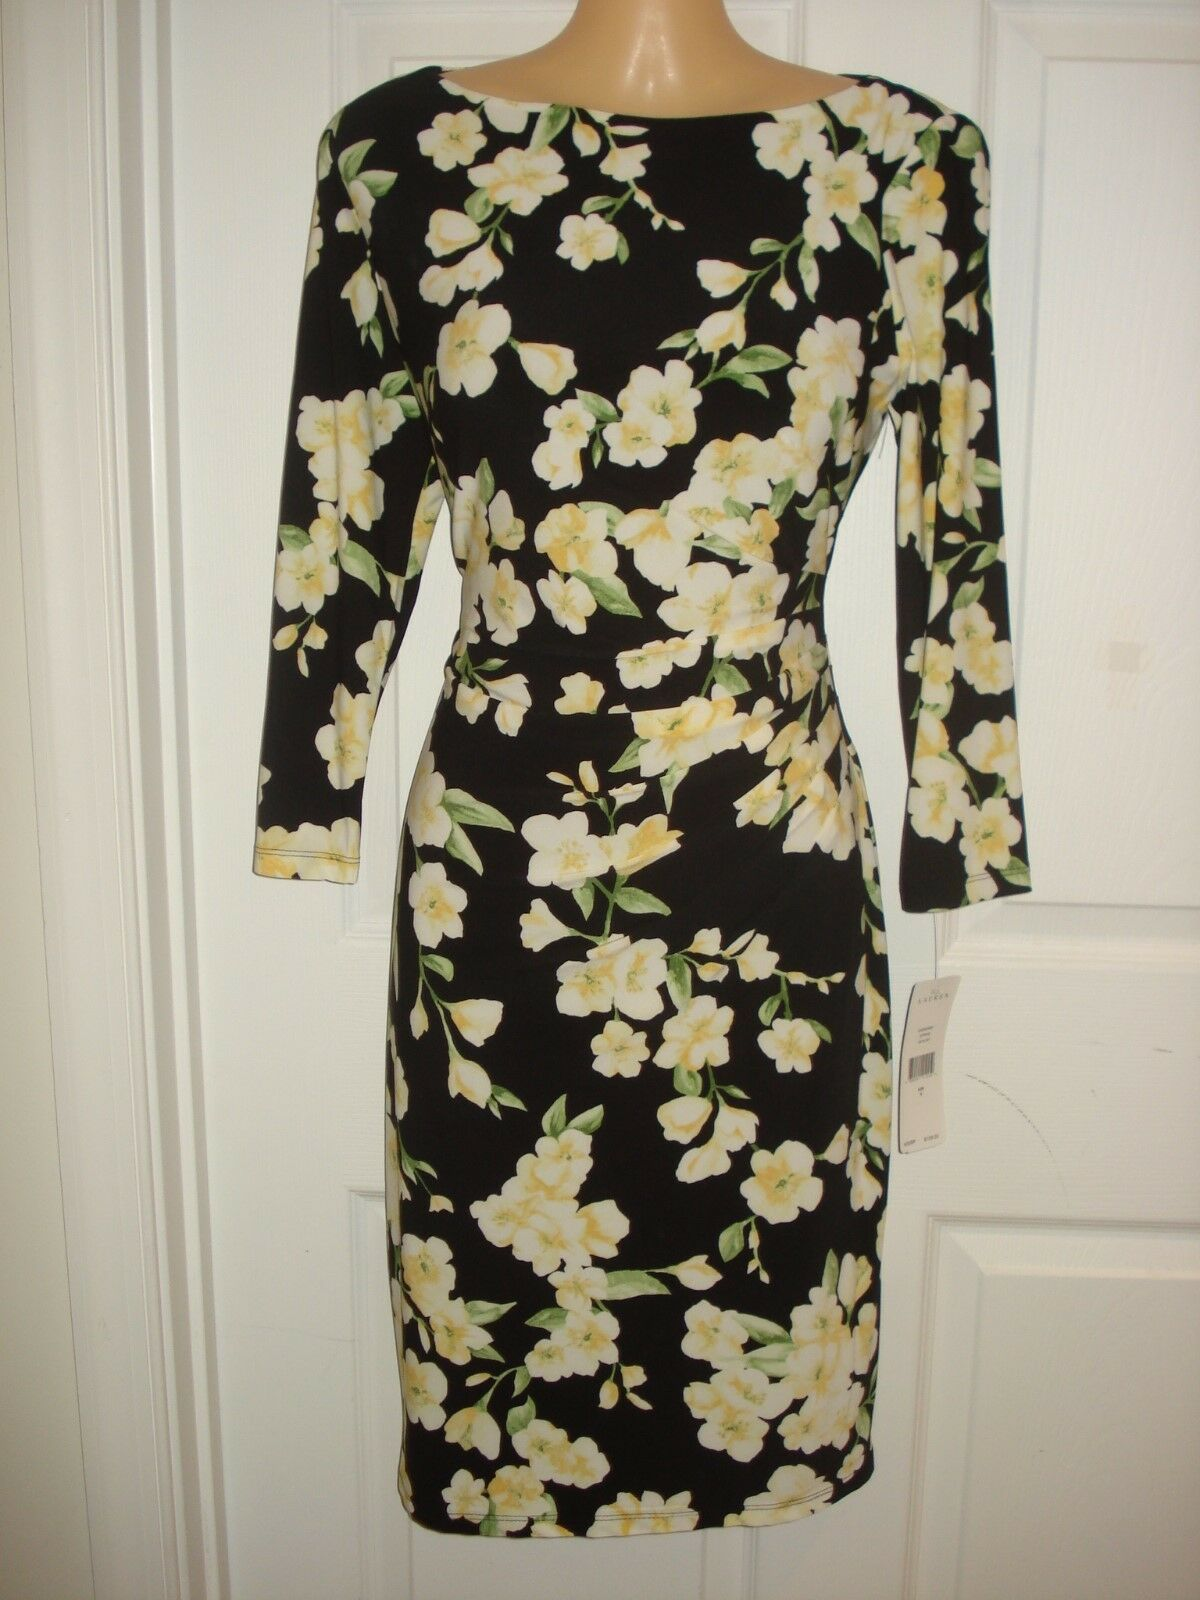 Lauren Ralph Lauren Wear to Work Floral Print Sheath Dress Sz 4